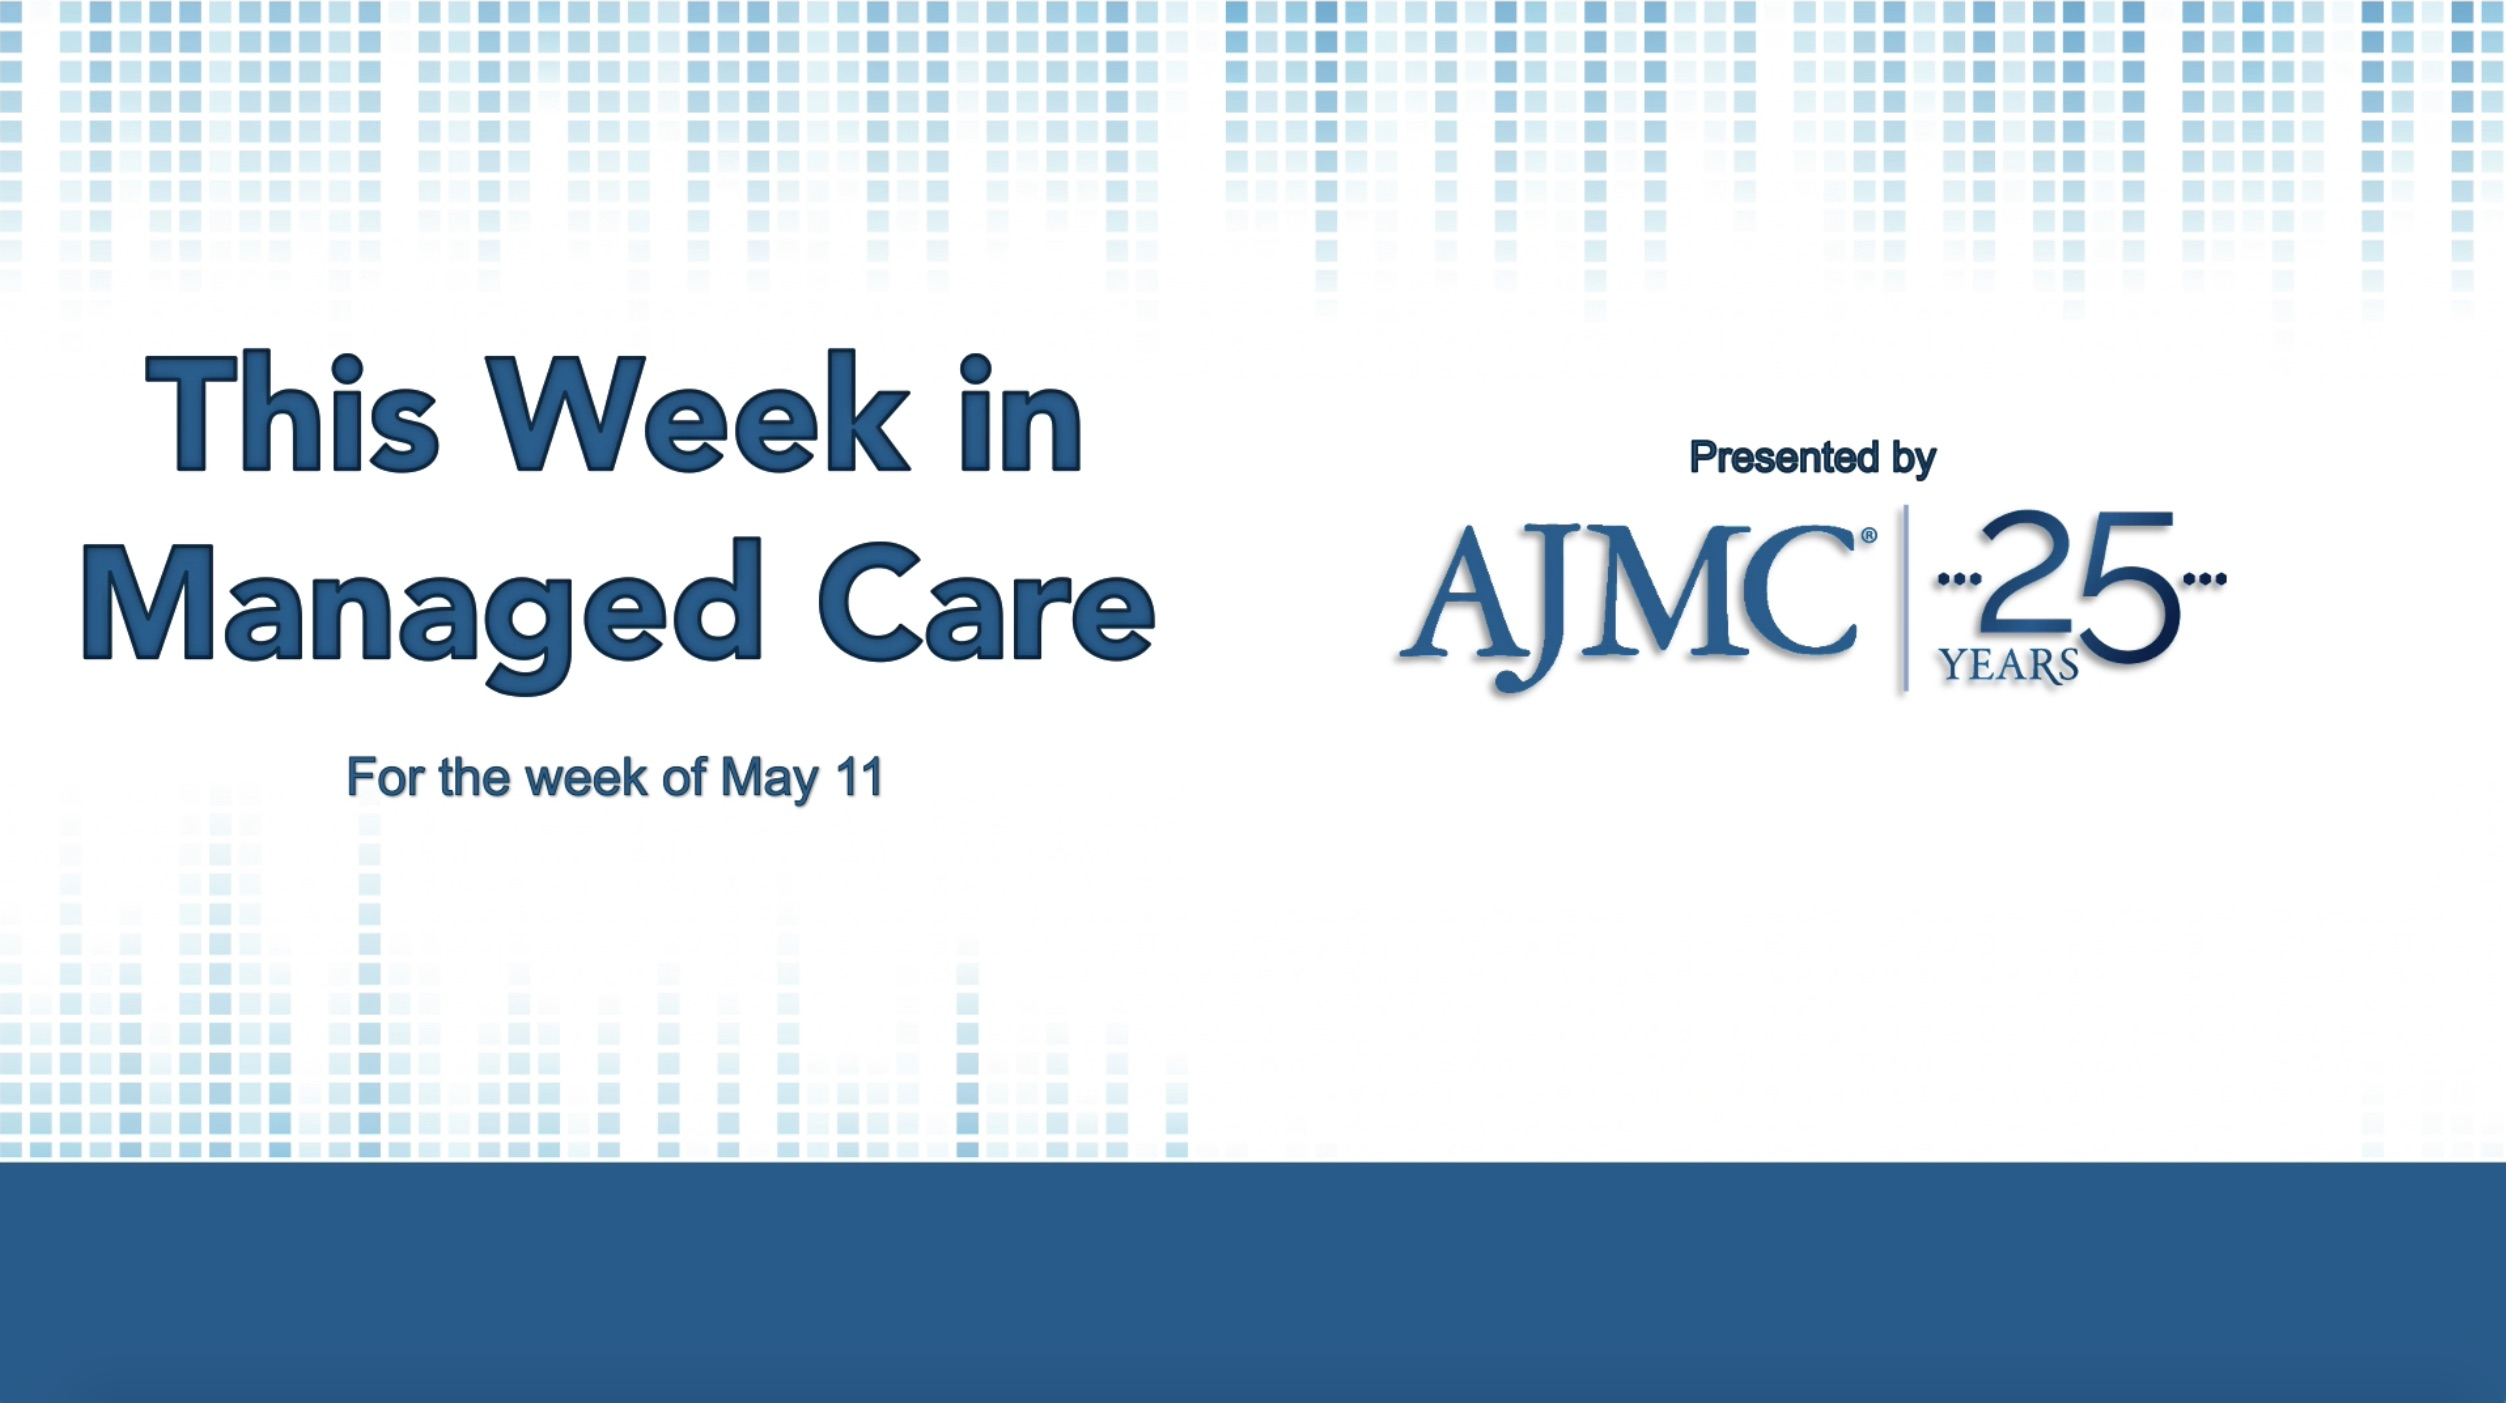 This Week in Managed Care: May 15, 2020